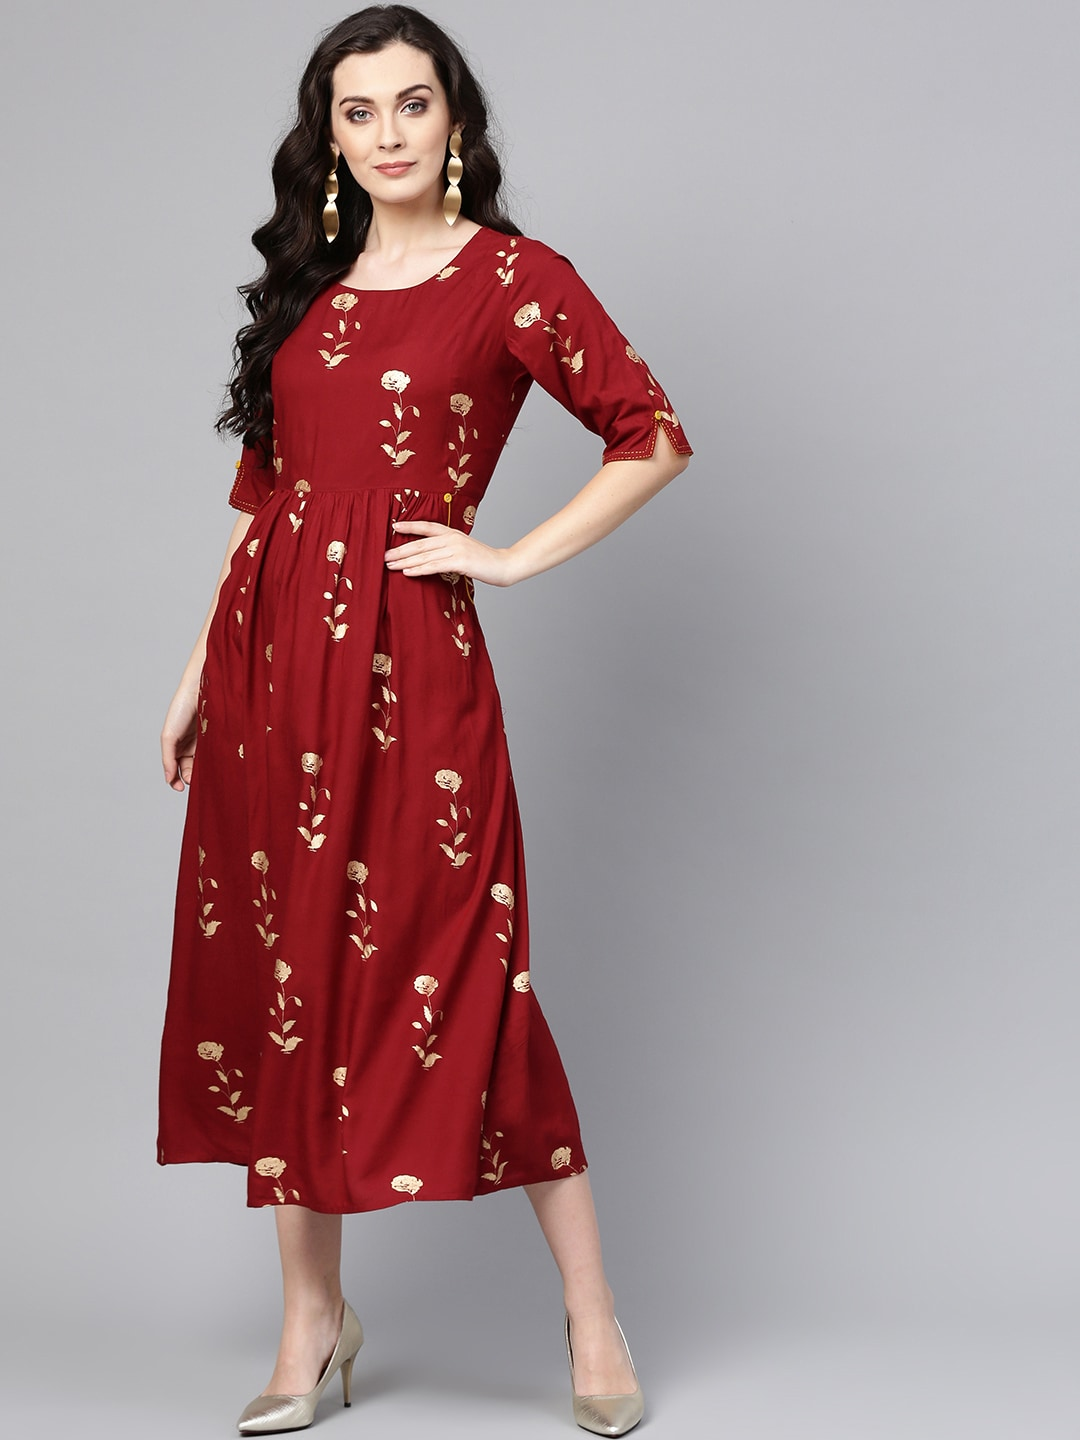 Dresses - Buy Western Dresses for Women   Girls  27fb8fcda